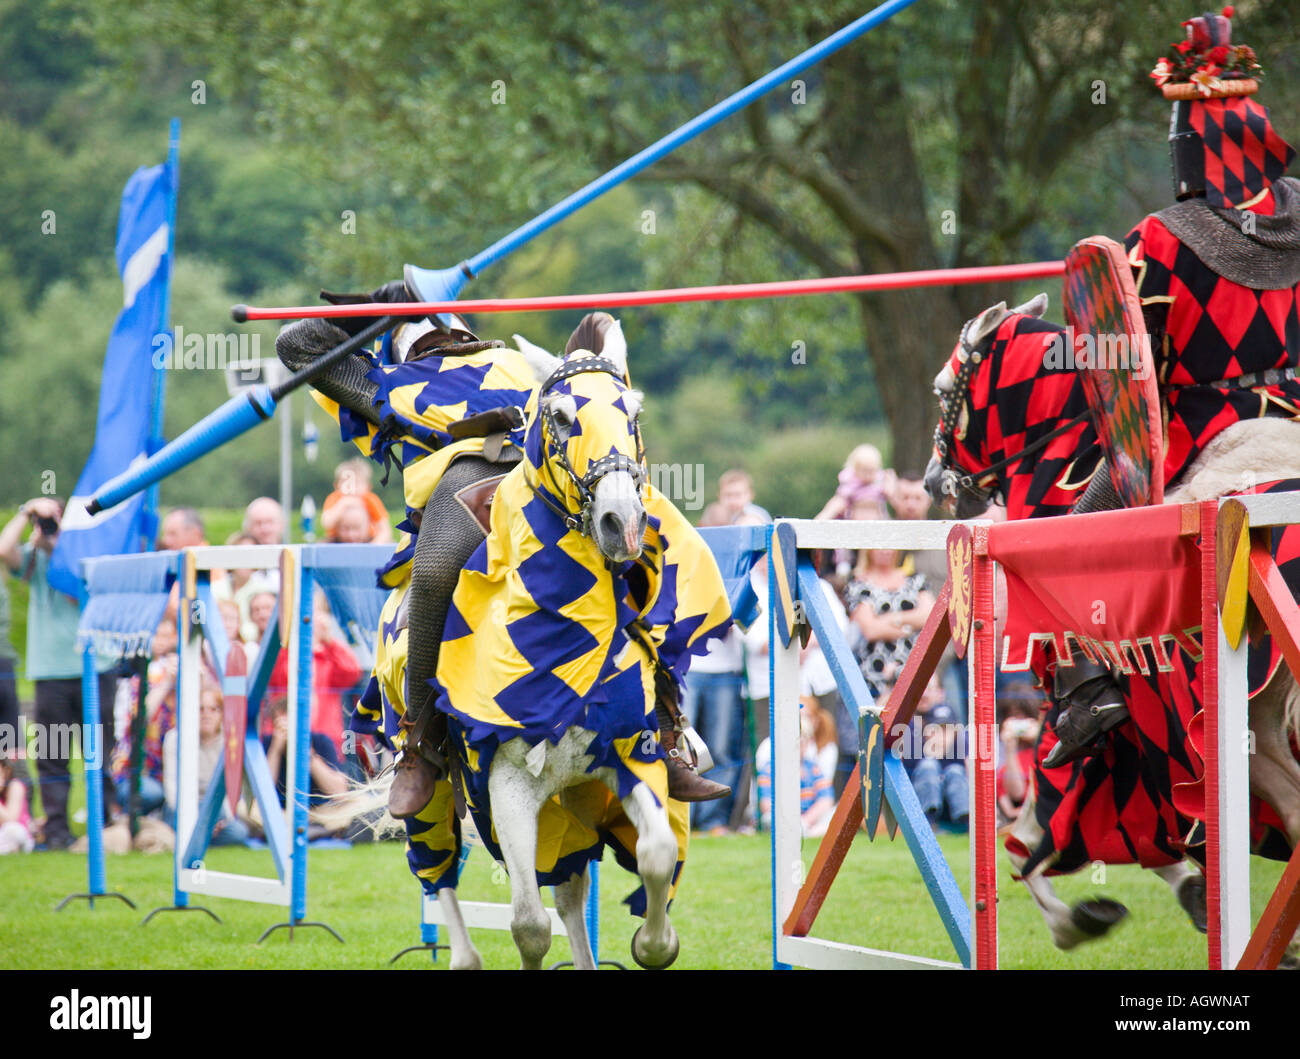 Medieval knight knocked off horse during jousting ...